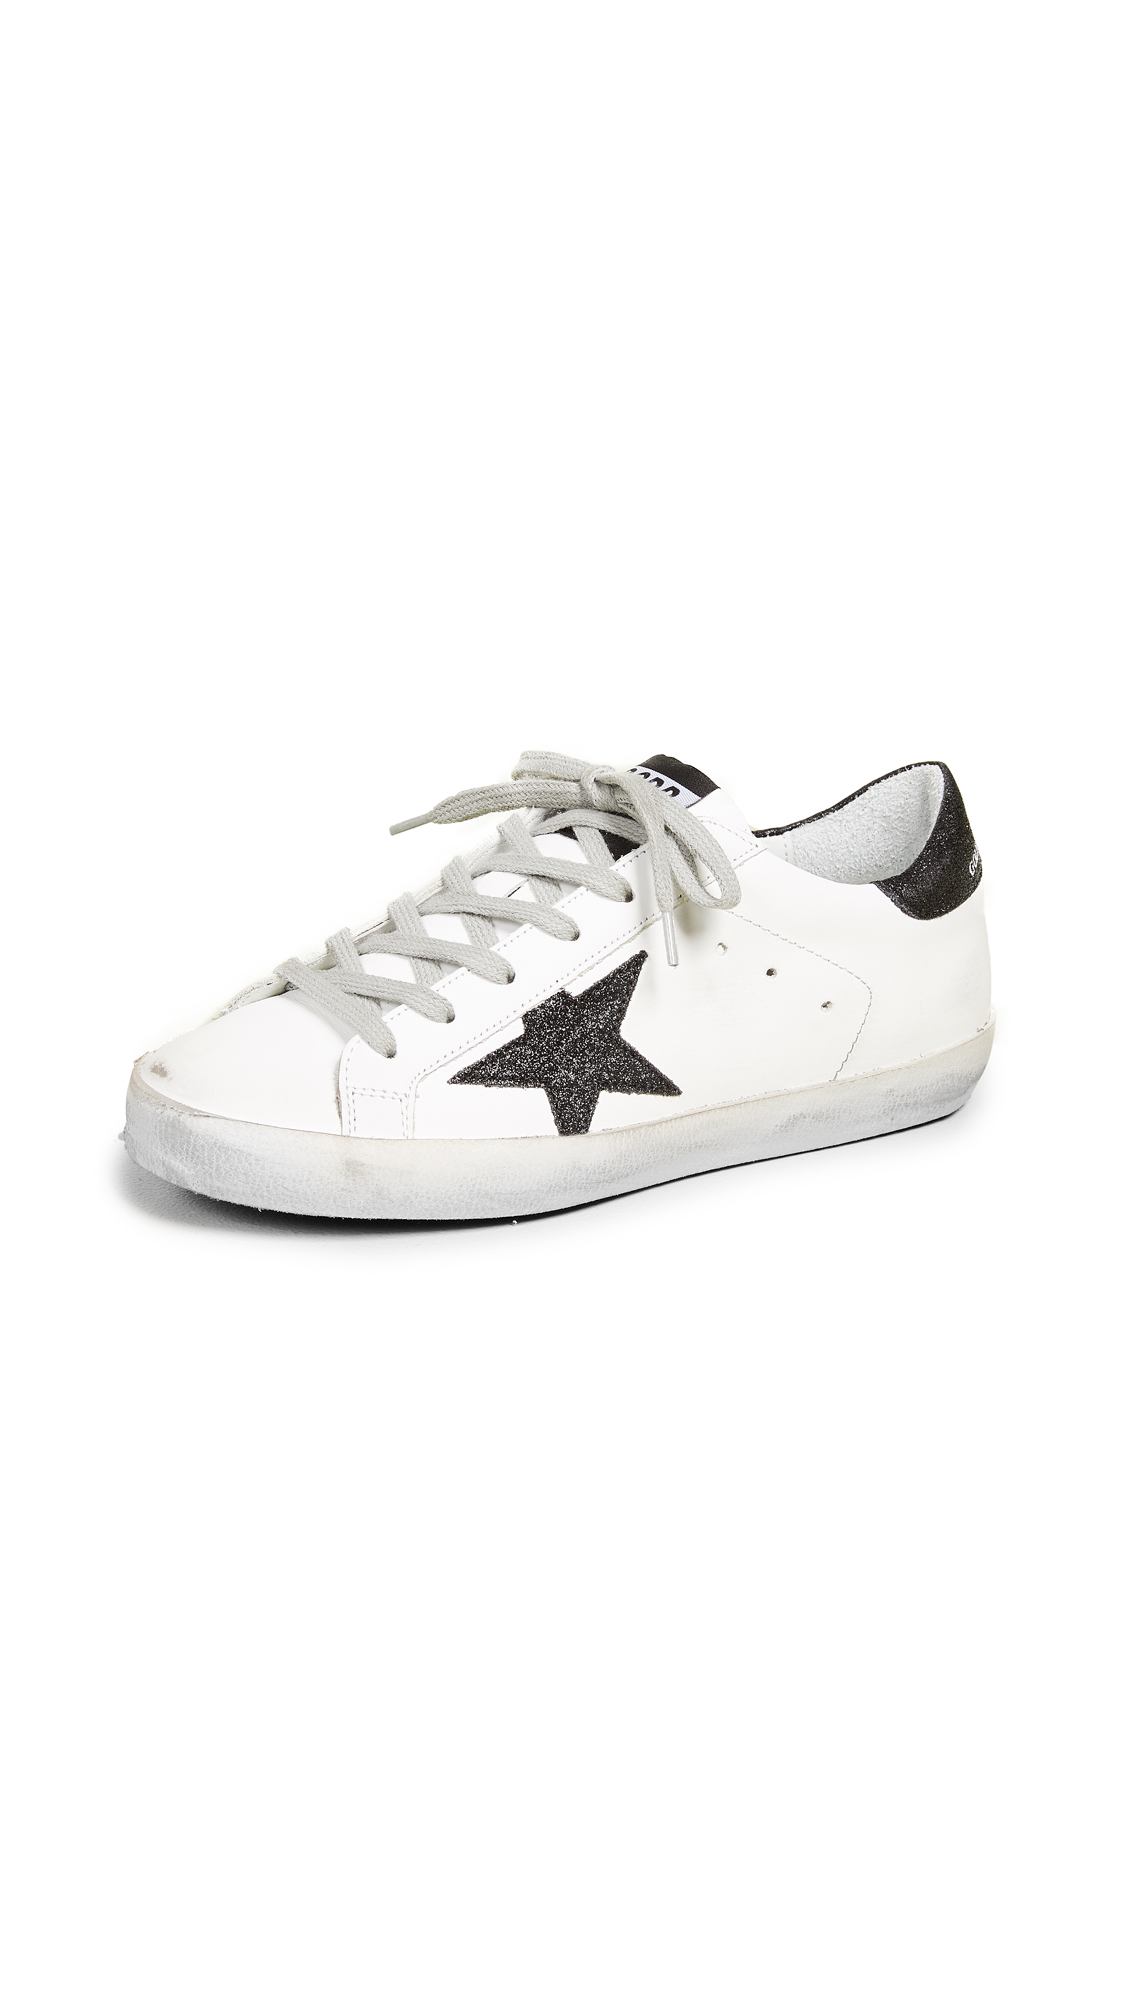 Golden Goose Superstar Sneakers - White/Black